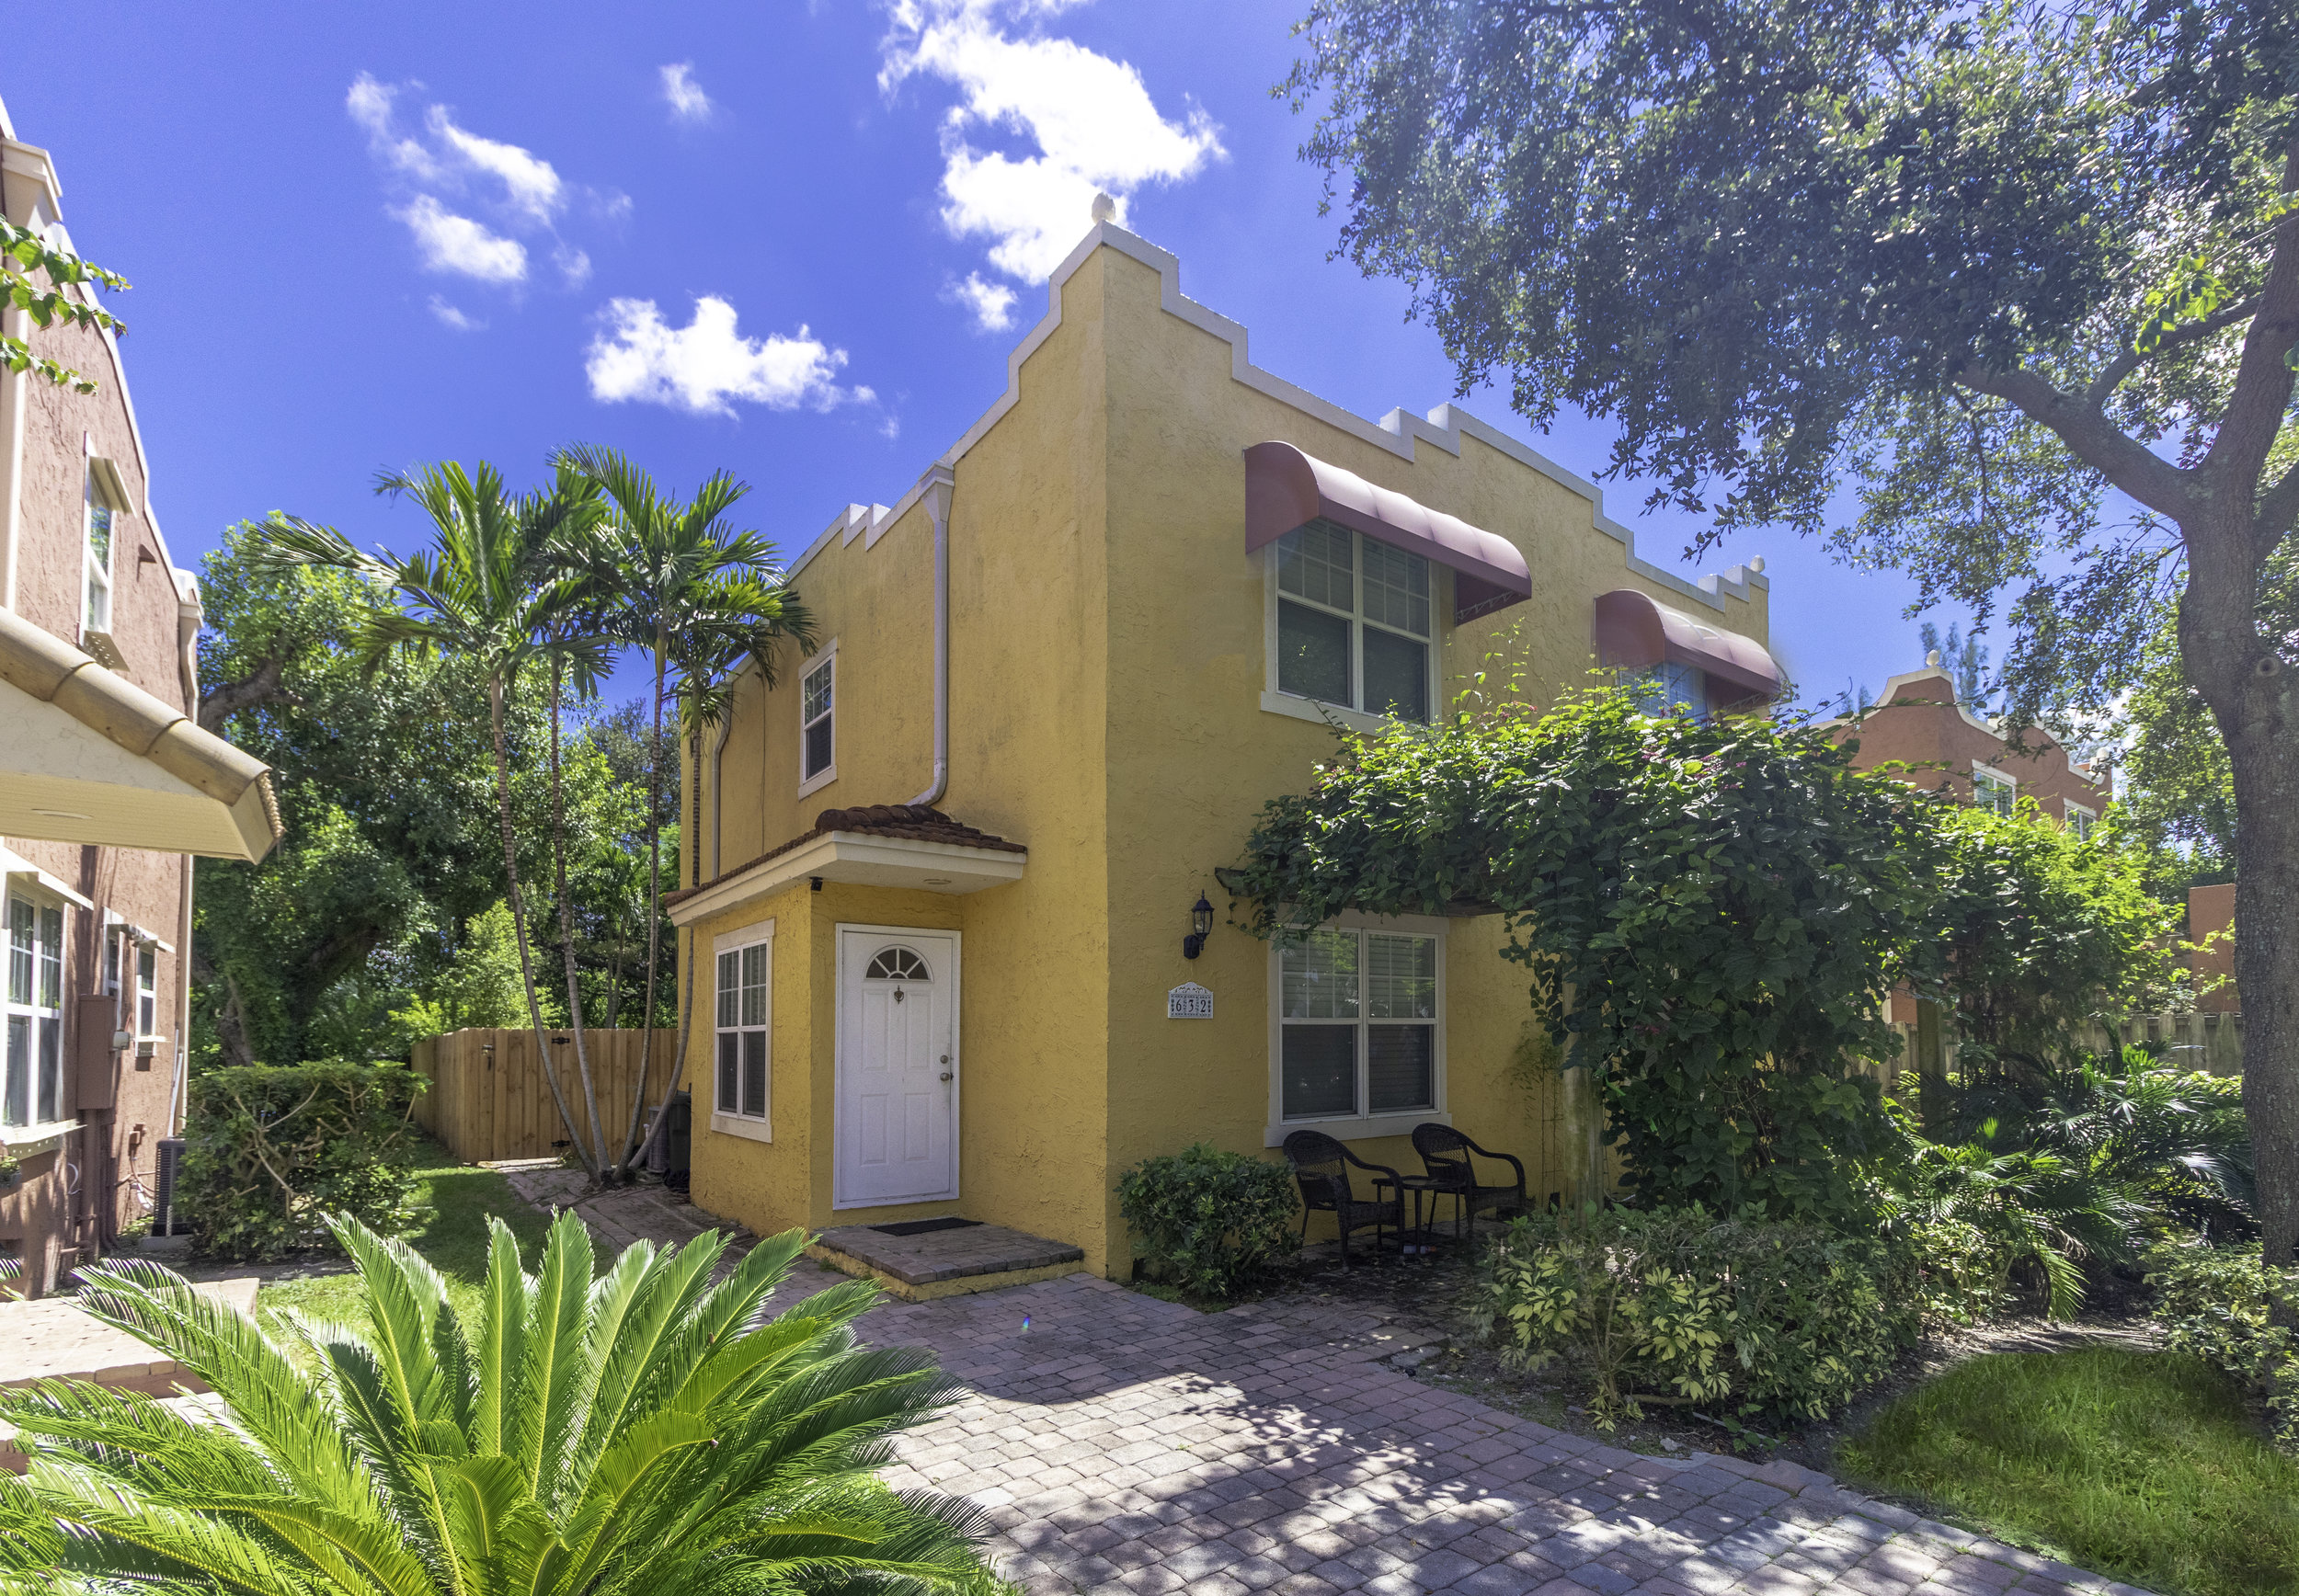 SOLD $270,000 2019 - 632 NW 2nd Ave Fort Lauderdale FL 33311